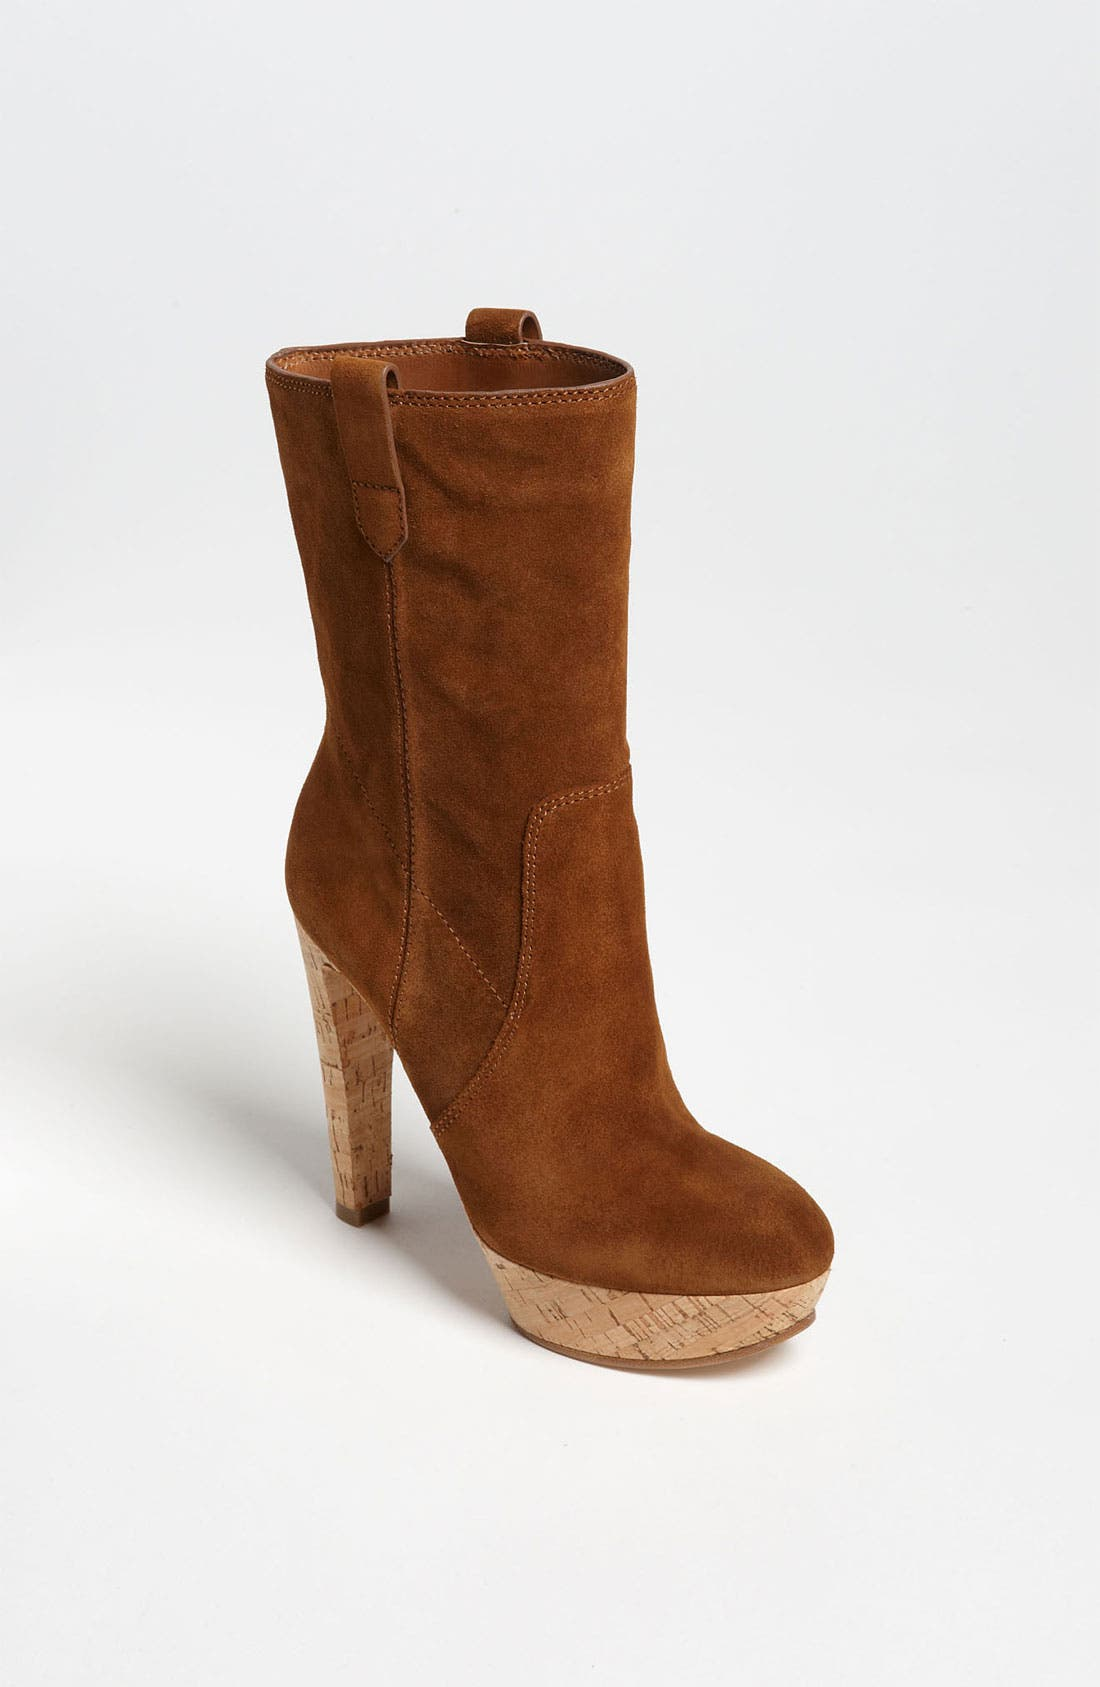 Alternate Image 1 Selected - KORS Michael Kors 'Brielle' Boot